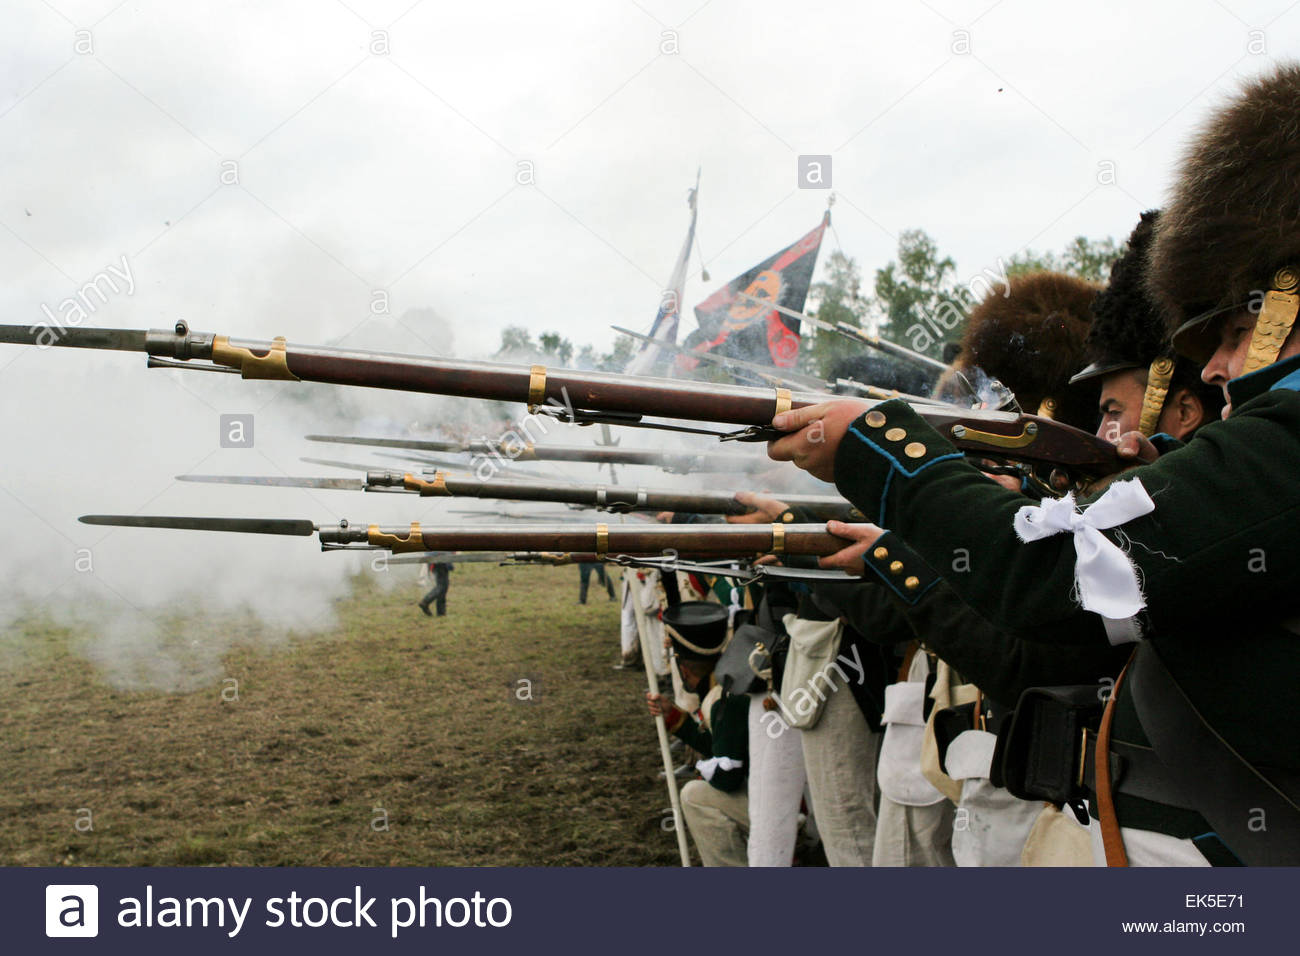 Russian soldiers fighting on enemies, Reconstruction of The Battle of Borodino, Every year the anniversary of the - Stock Image